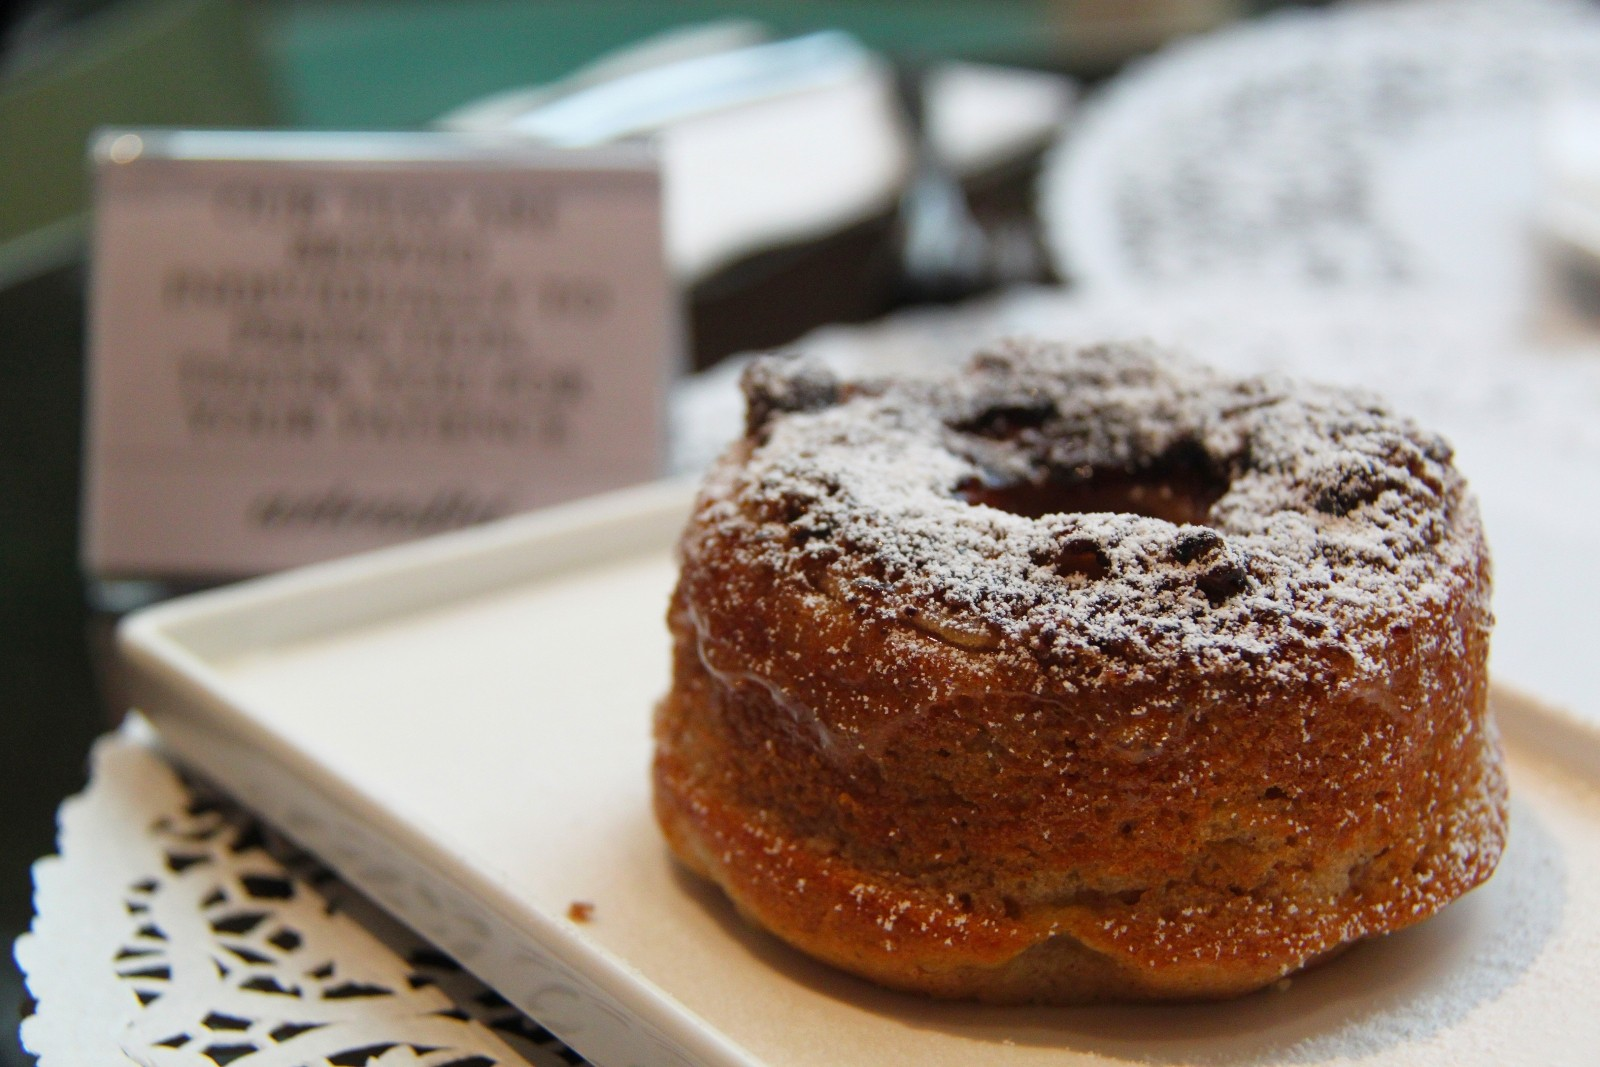 a close shot of an old-fashioned donut with powdered sugar on top